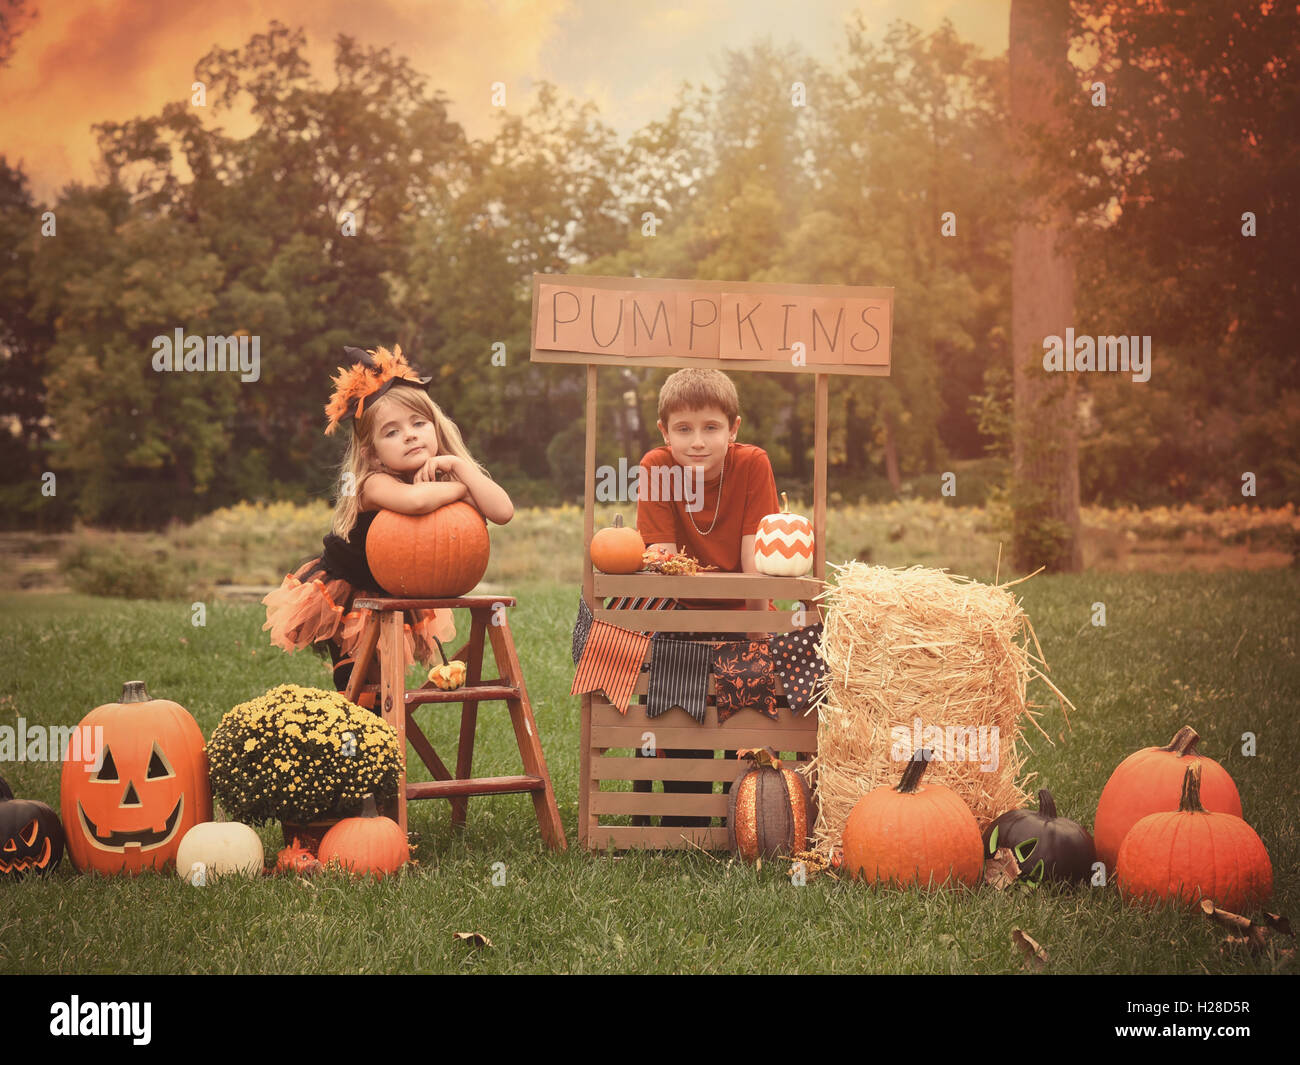 Two children are sitting outside at a wooden stand selling Halloween pumpkins for a holiday activity concept or Stock Photo